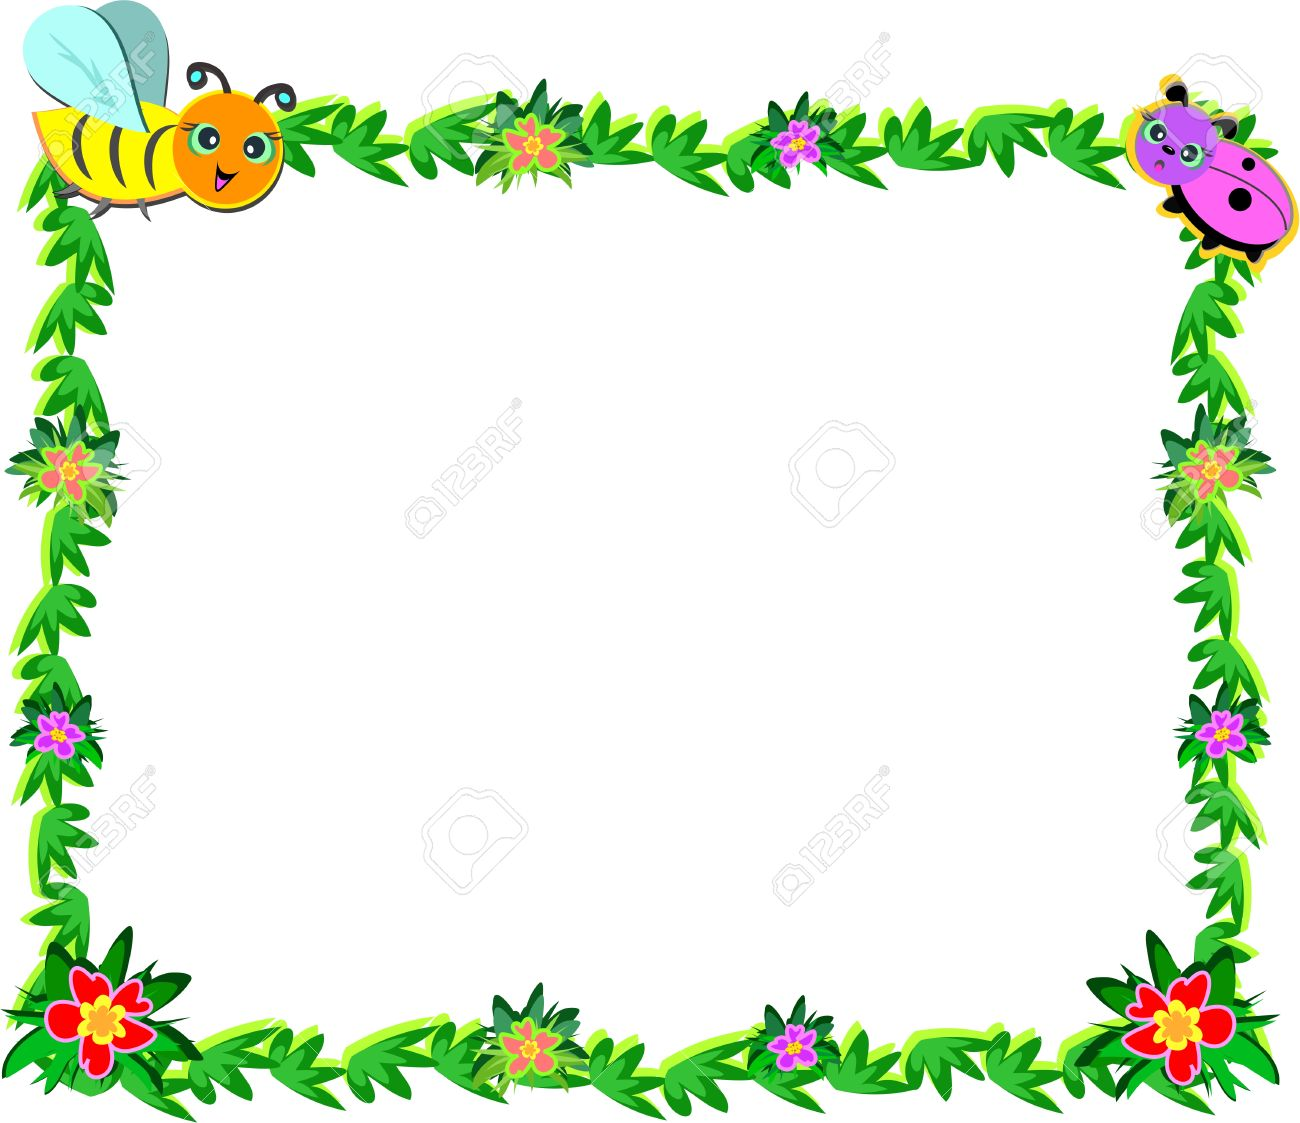 Frame Of Bee, Ladybug, Vines, And Flowers Royalty Free Cliparts ...